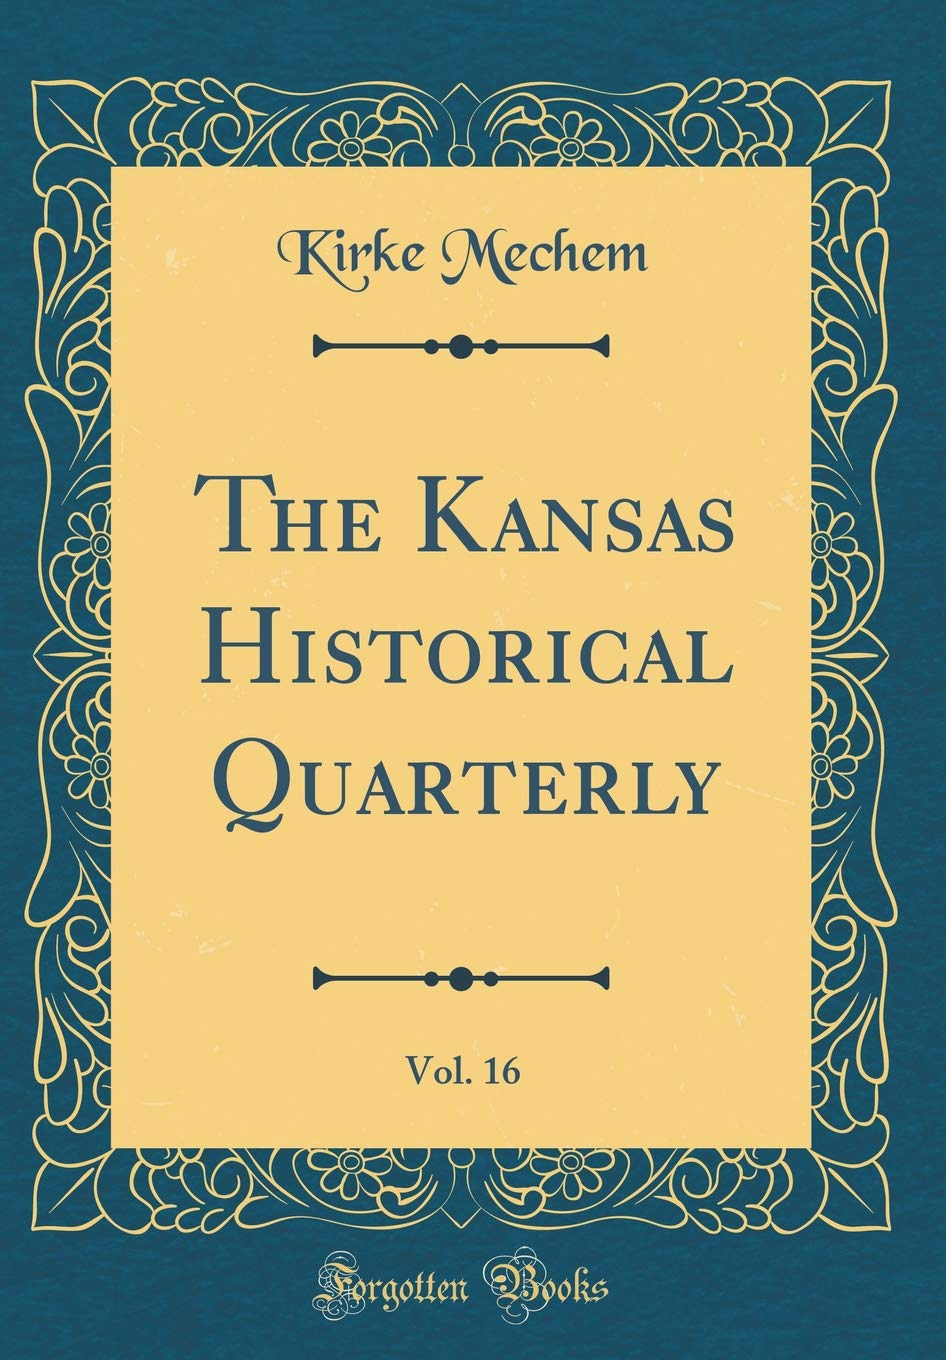 The Kansas Historical Quarterly, Vol. 16 (Classic Reprint) PDF